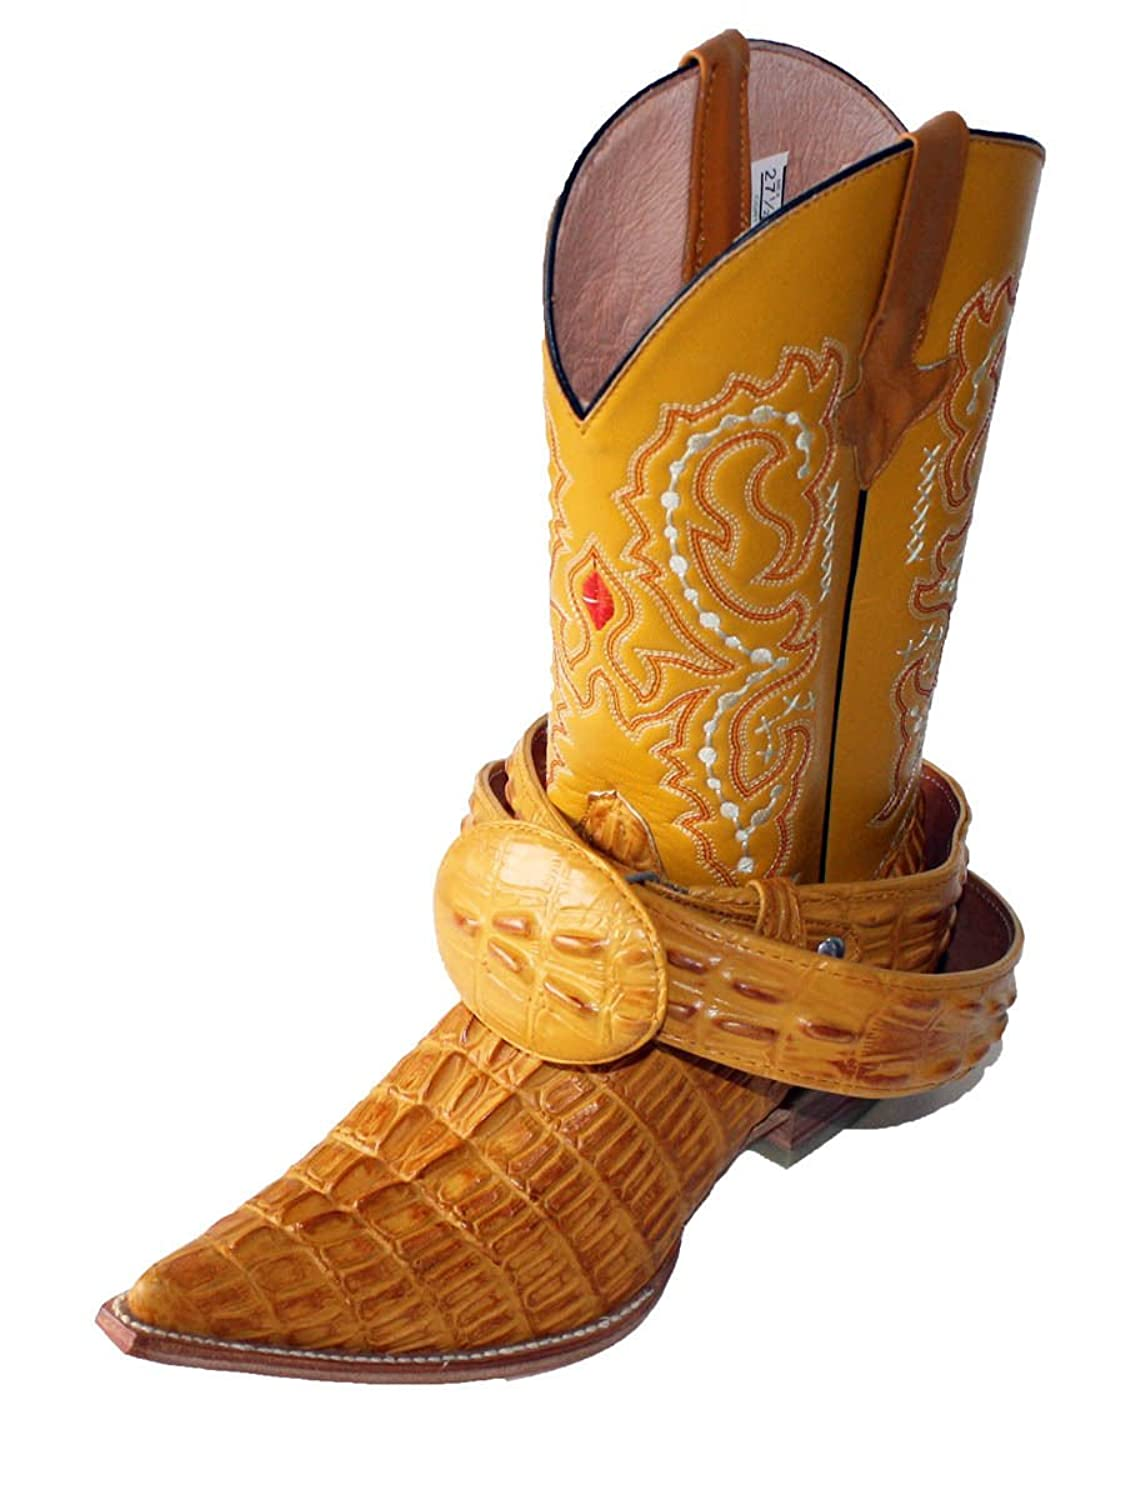 Dona Michi Mens Western Cowboy Leather Crocodile Print (Embossed) Boots/Free Belt